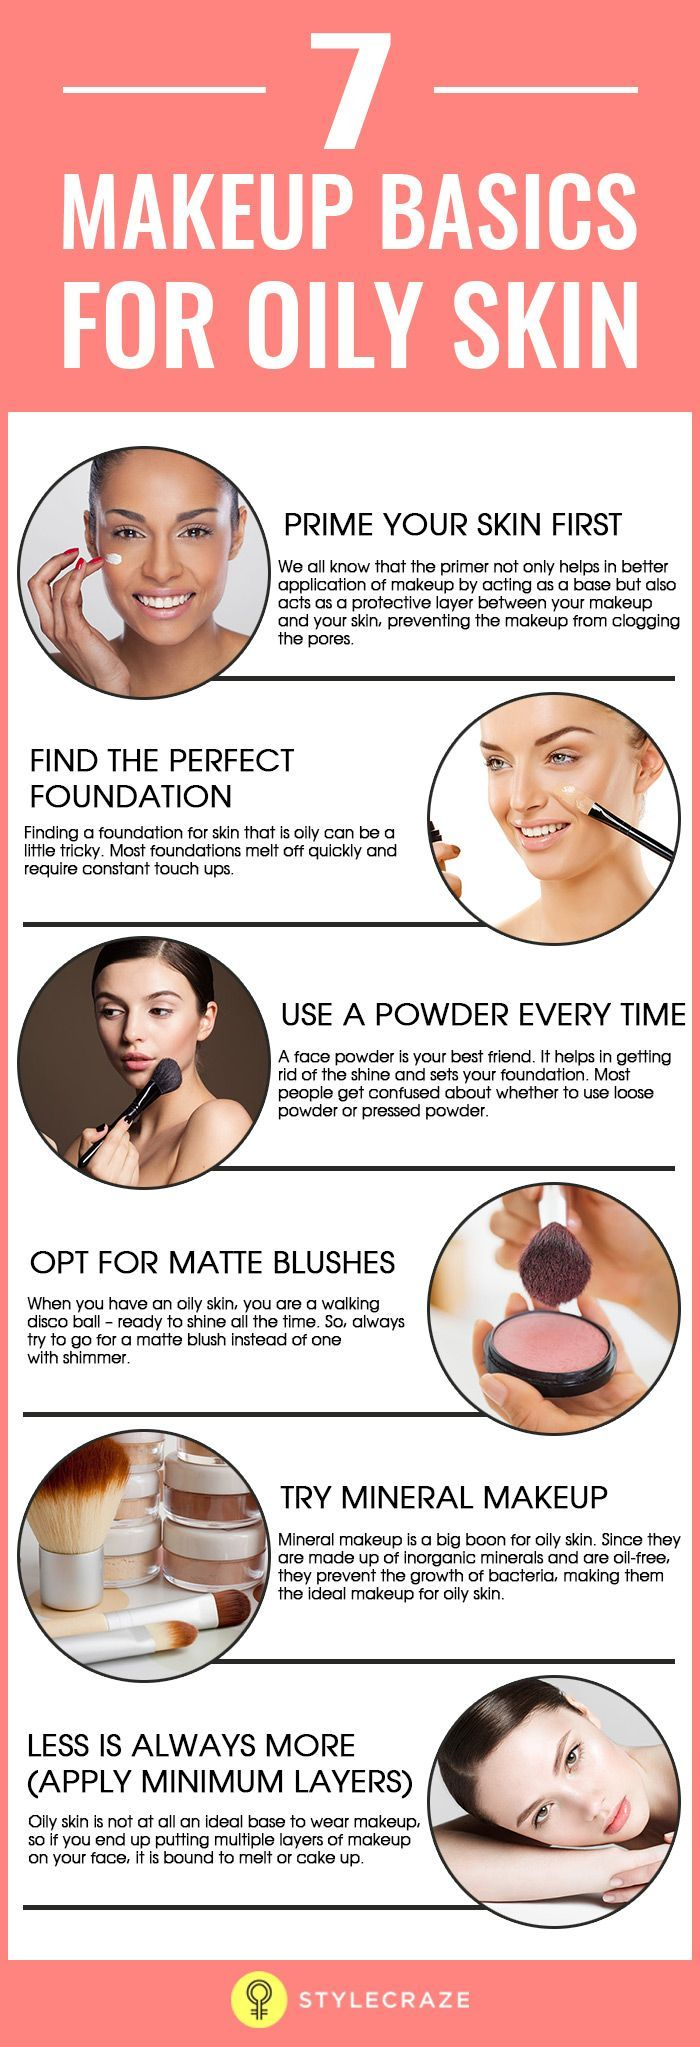 Makeup For Oily Skin 7 Best Makeup Tips For Oily Skinned -2168